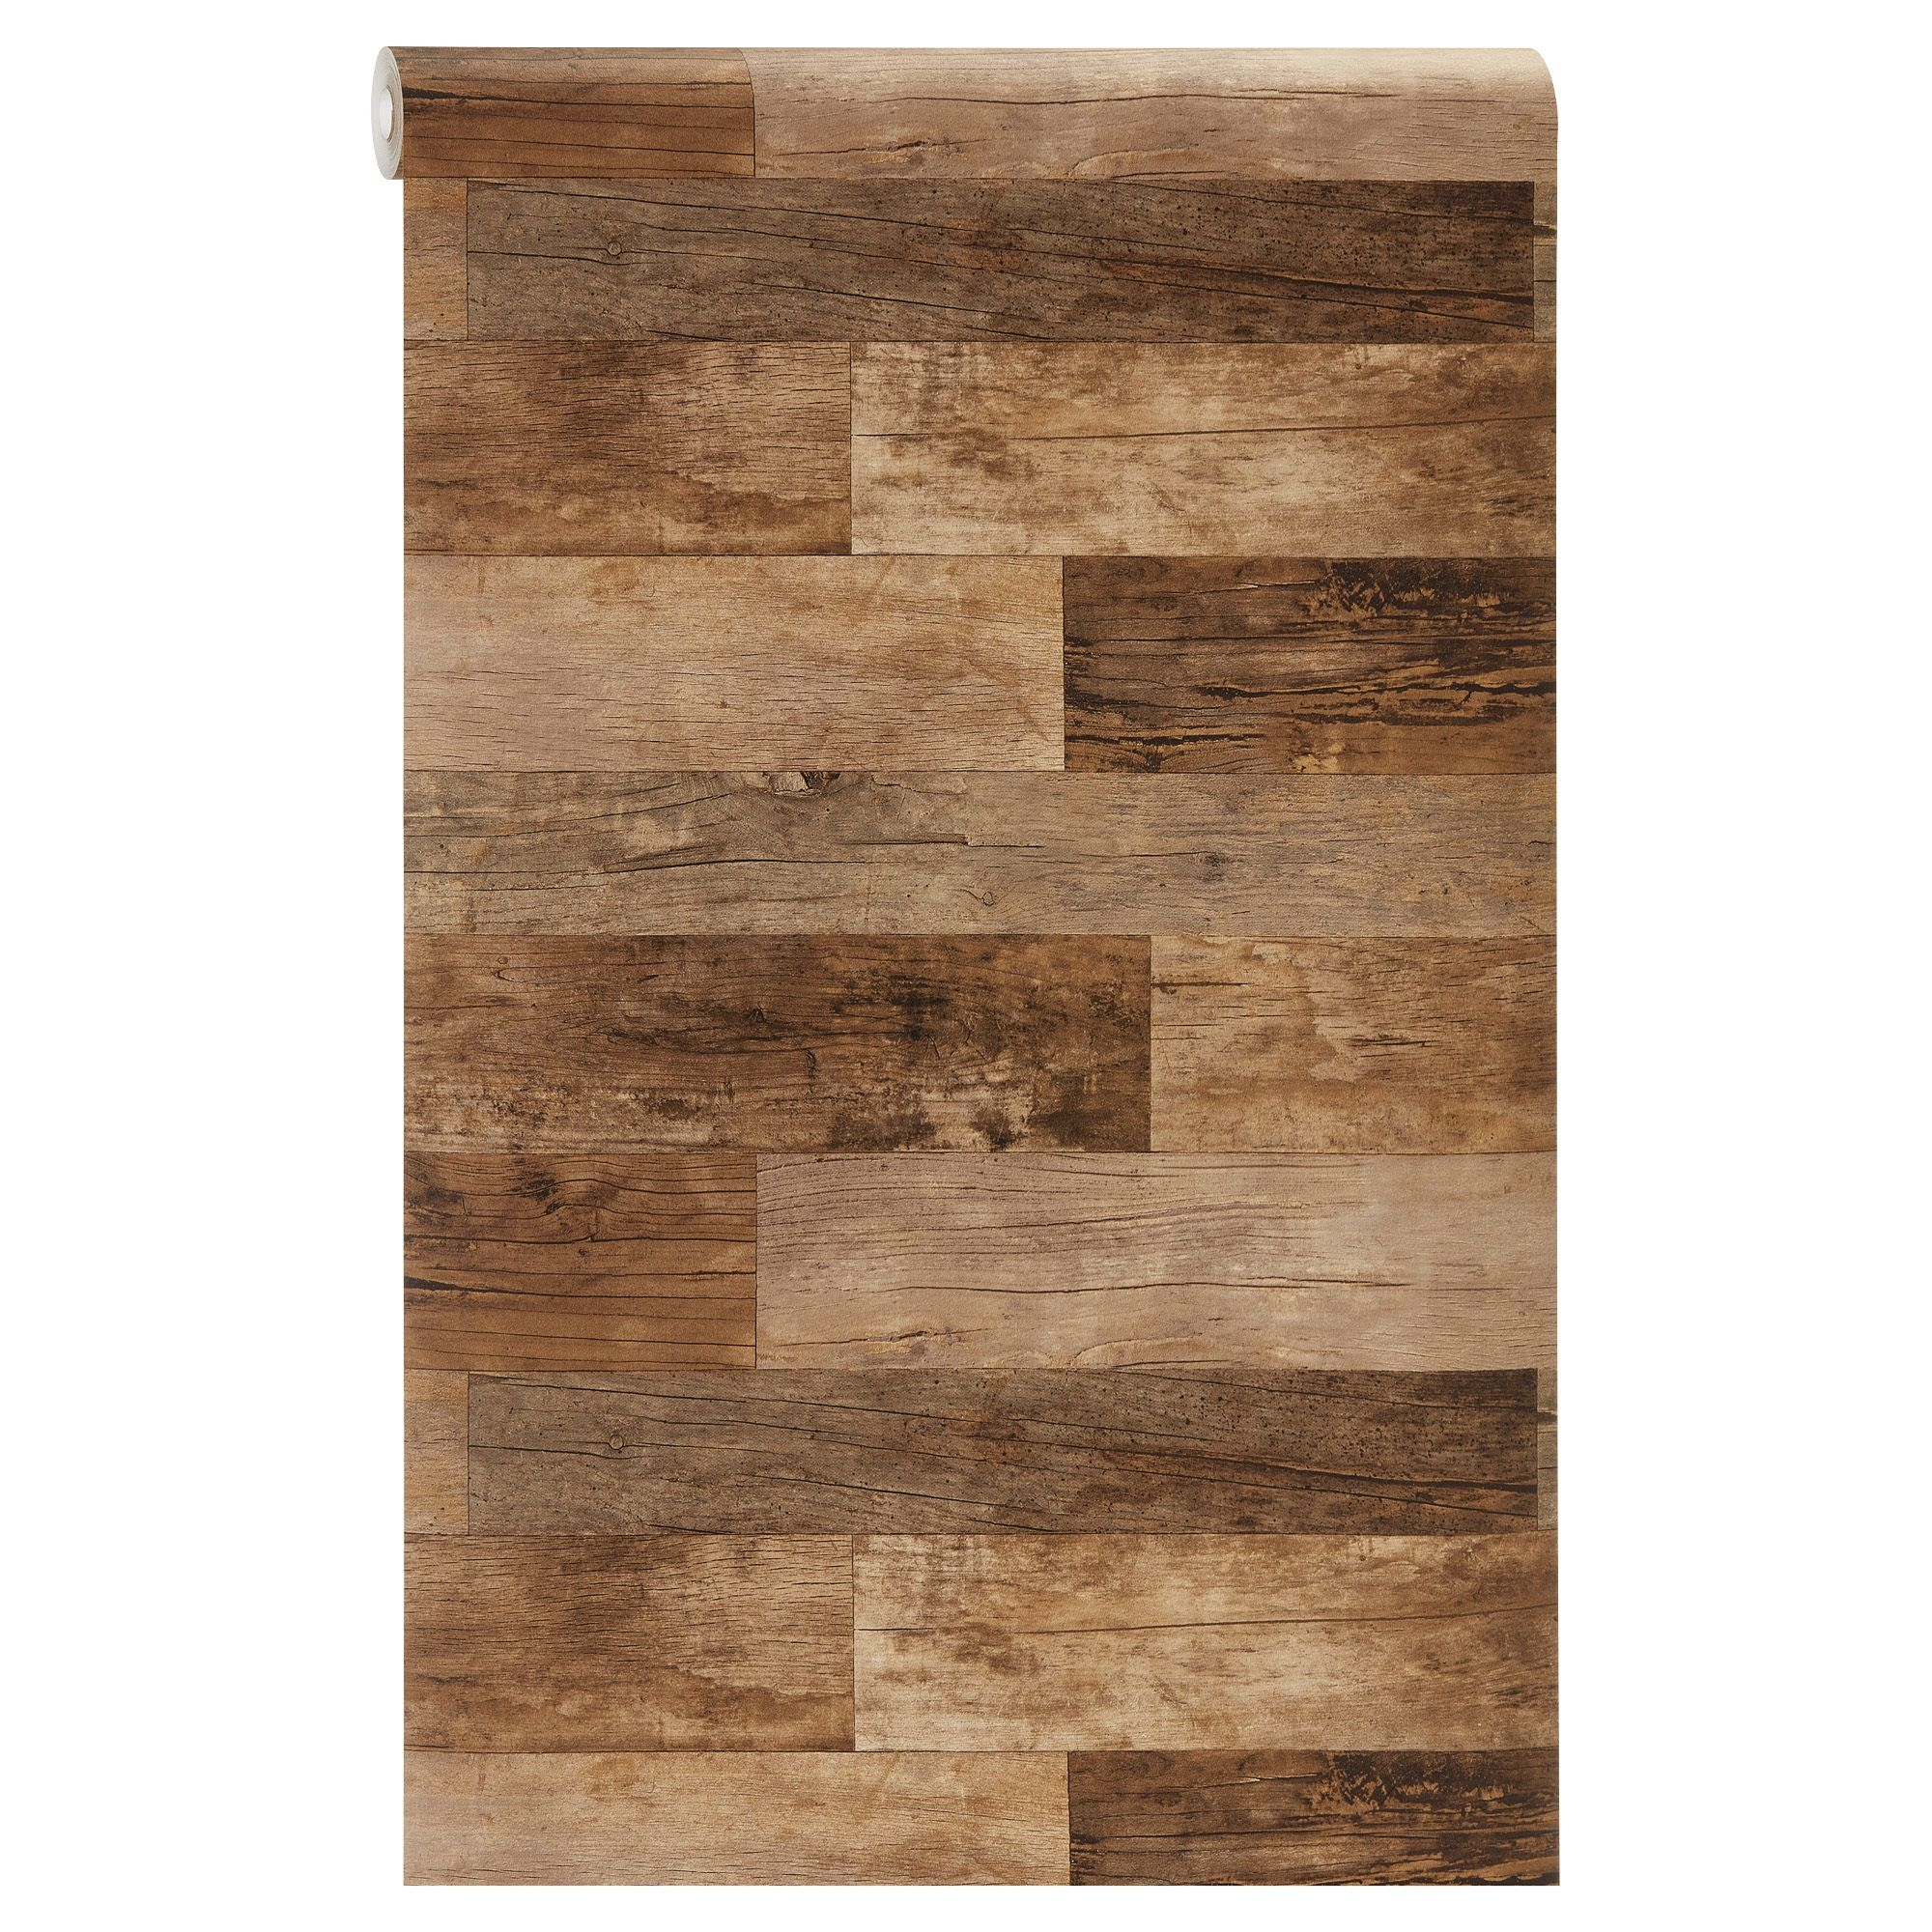 Vliesbehang Plaksel Behang Anka In 2019 Op De Muur Chill Room Hardwood Floors En